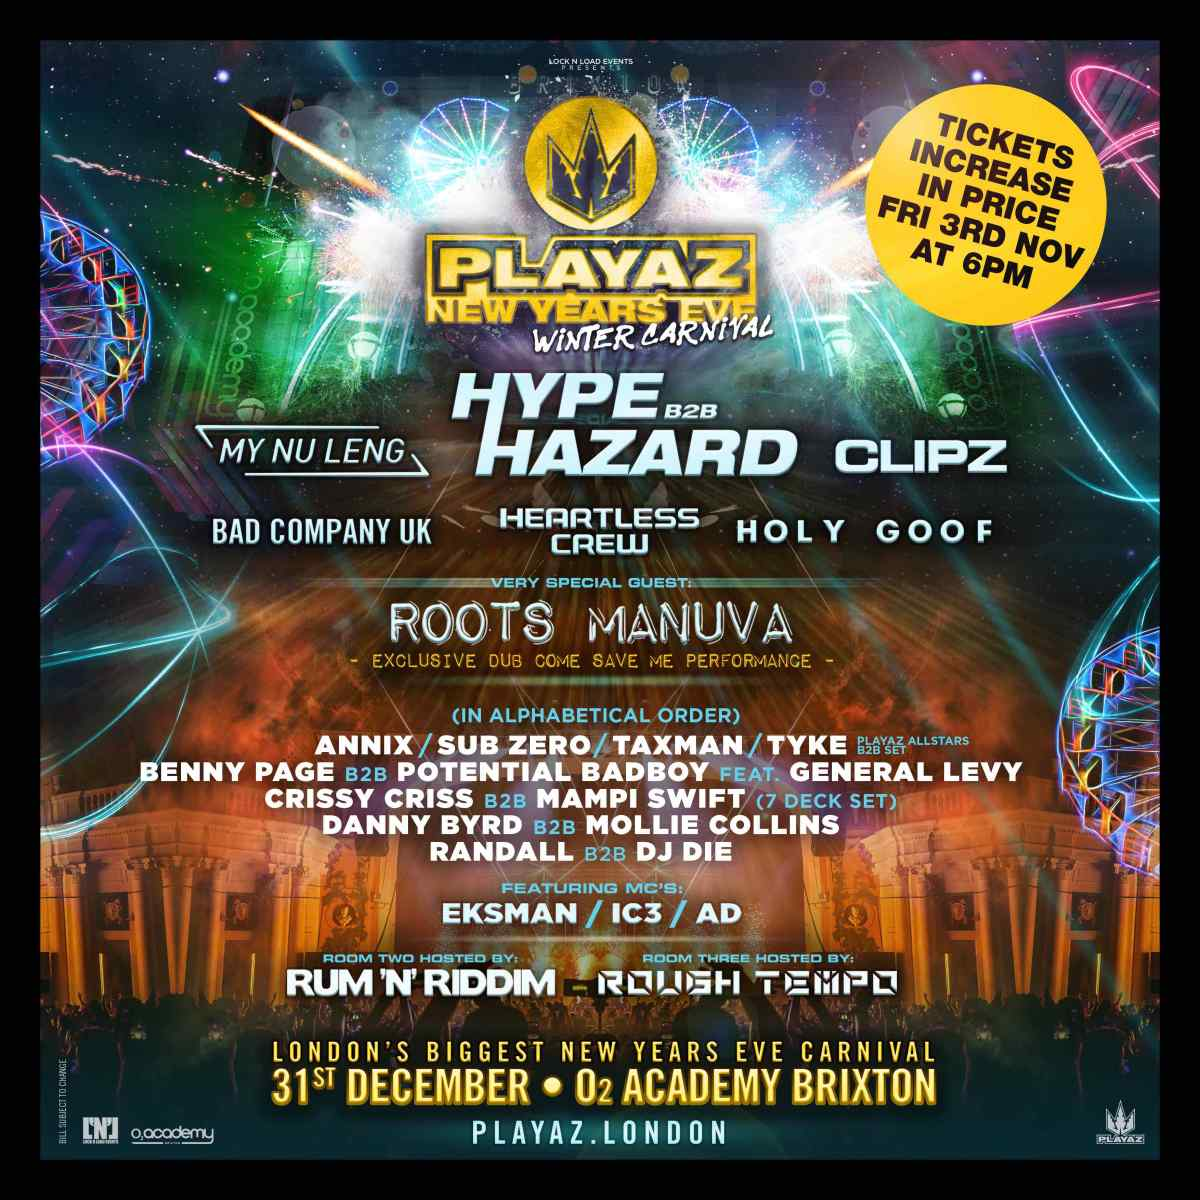 PLAYAZ NYE 2017   Brixton Buzz news, features and listings